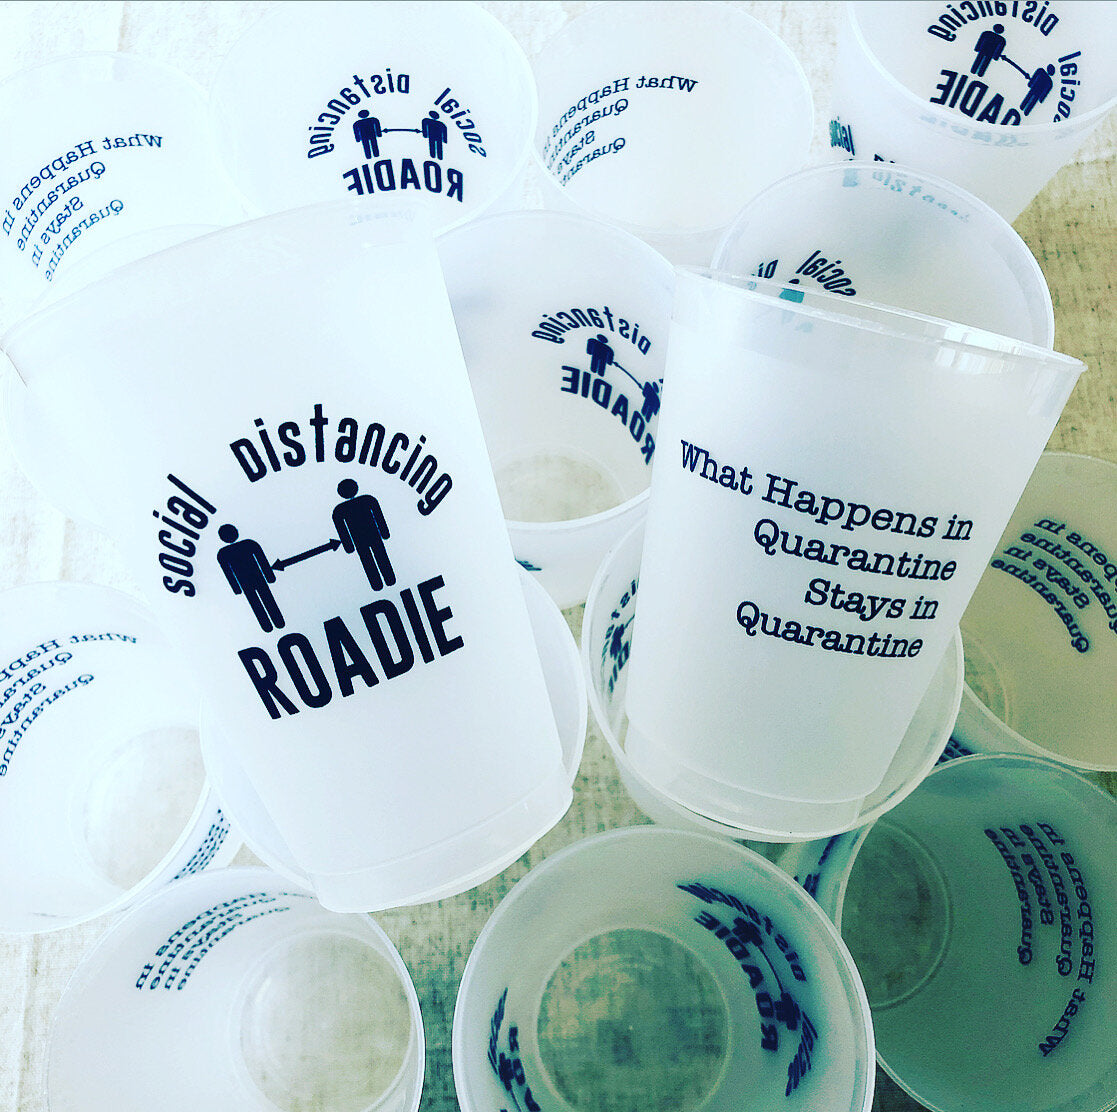 Frosted Stadium Cups - Social Distancing Roadie